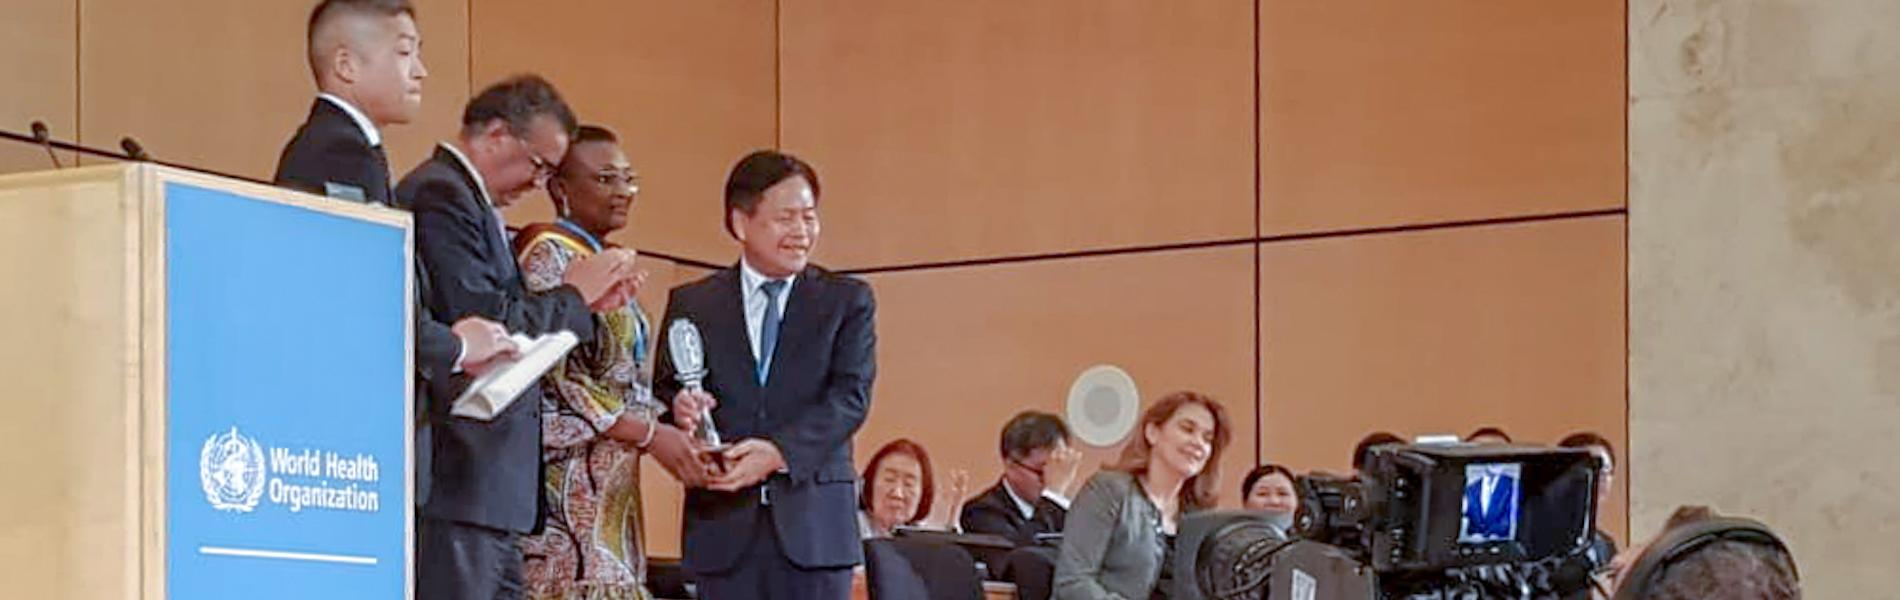 Professor Judith Torimiro is recognized at the World Health Assembly on 24 May 2019